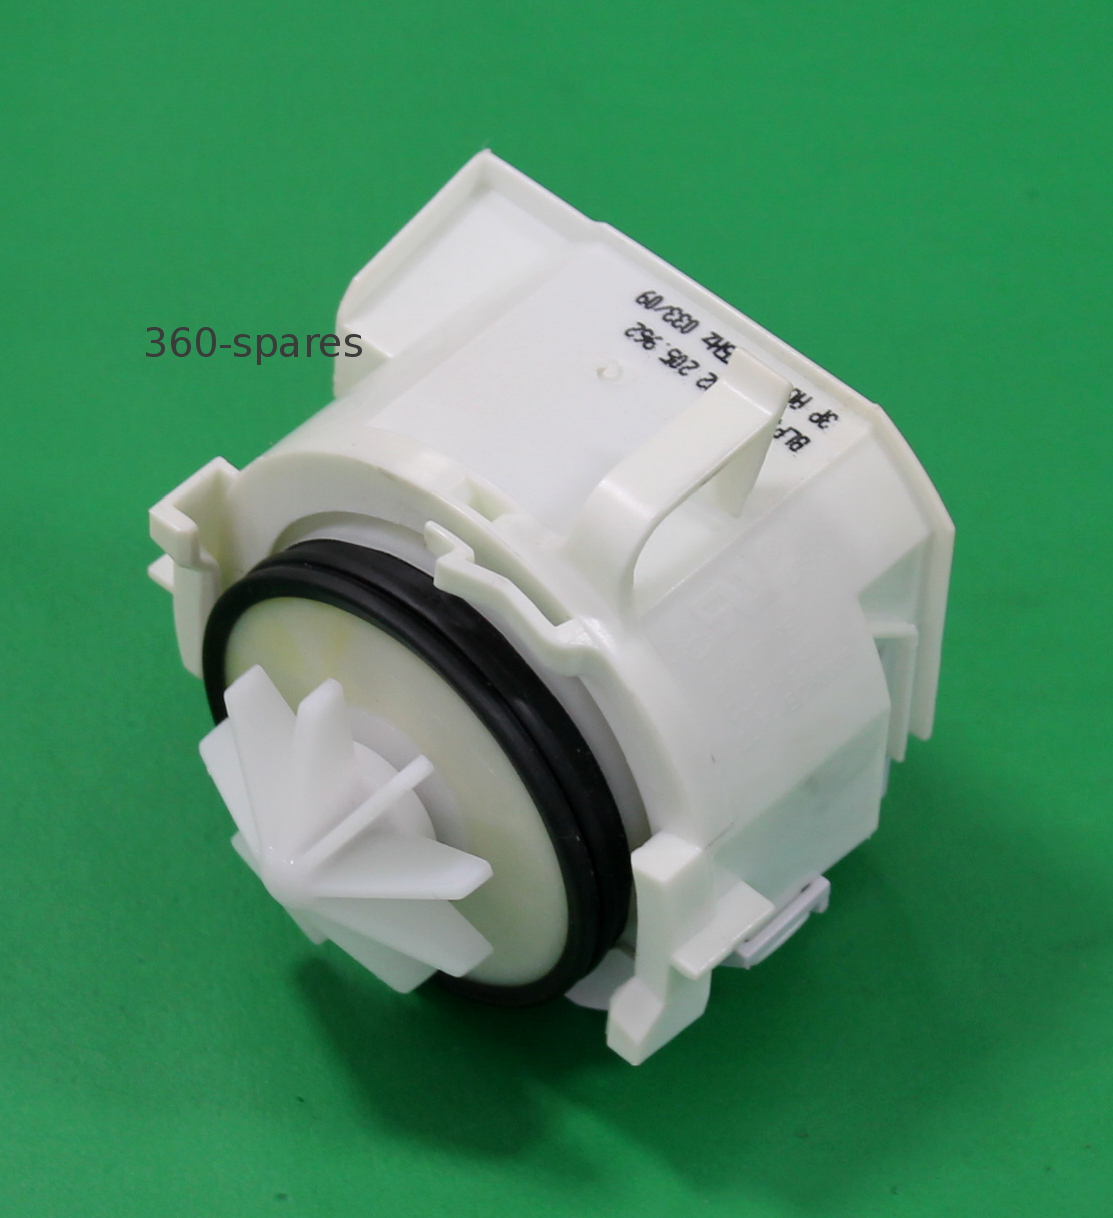 Bosch smv63m00gb 01 dishwasher drain pump blp3 00 002 ebay - Bosch dishwasher pump not draining ...